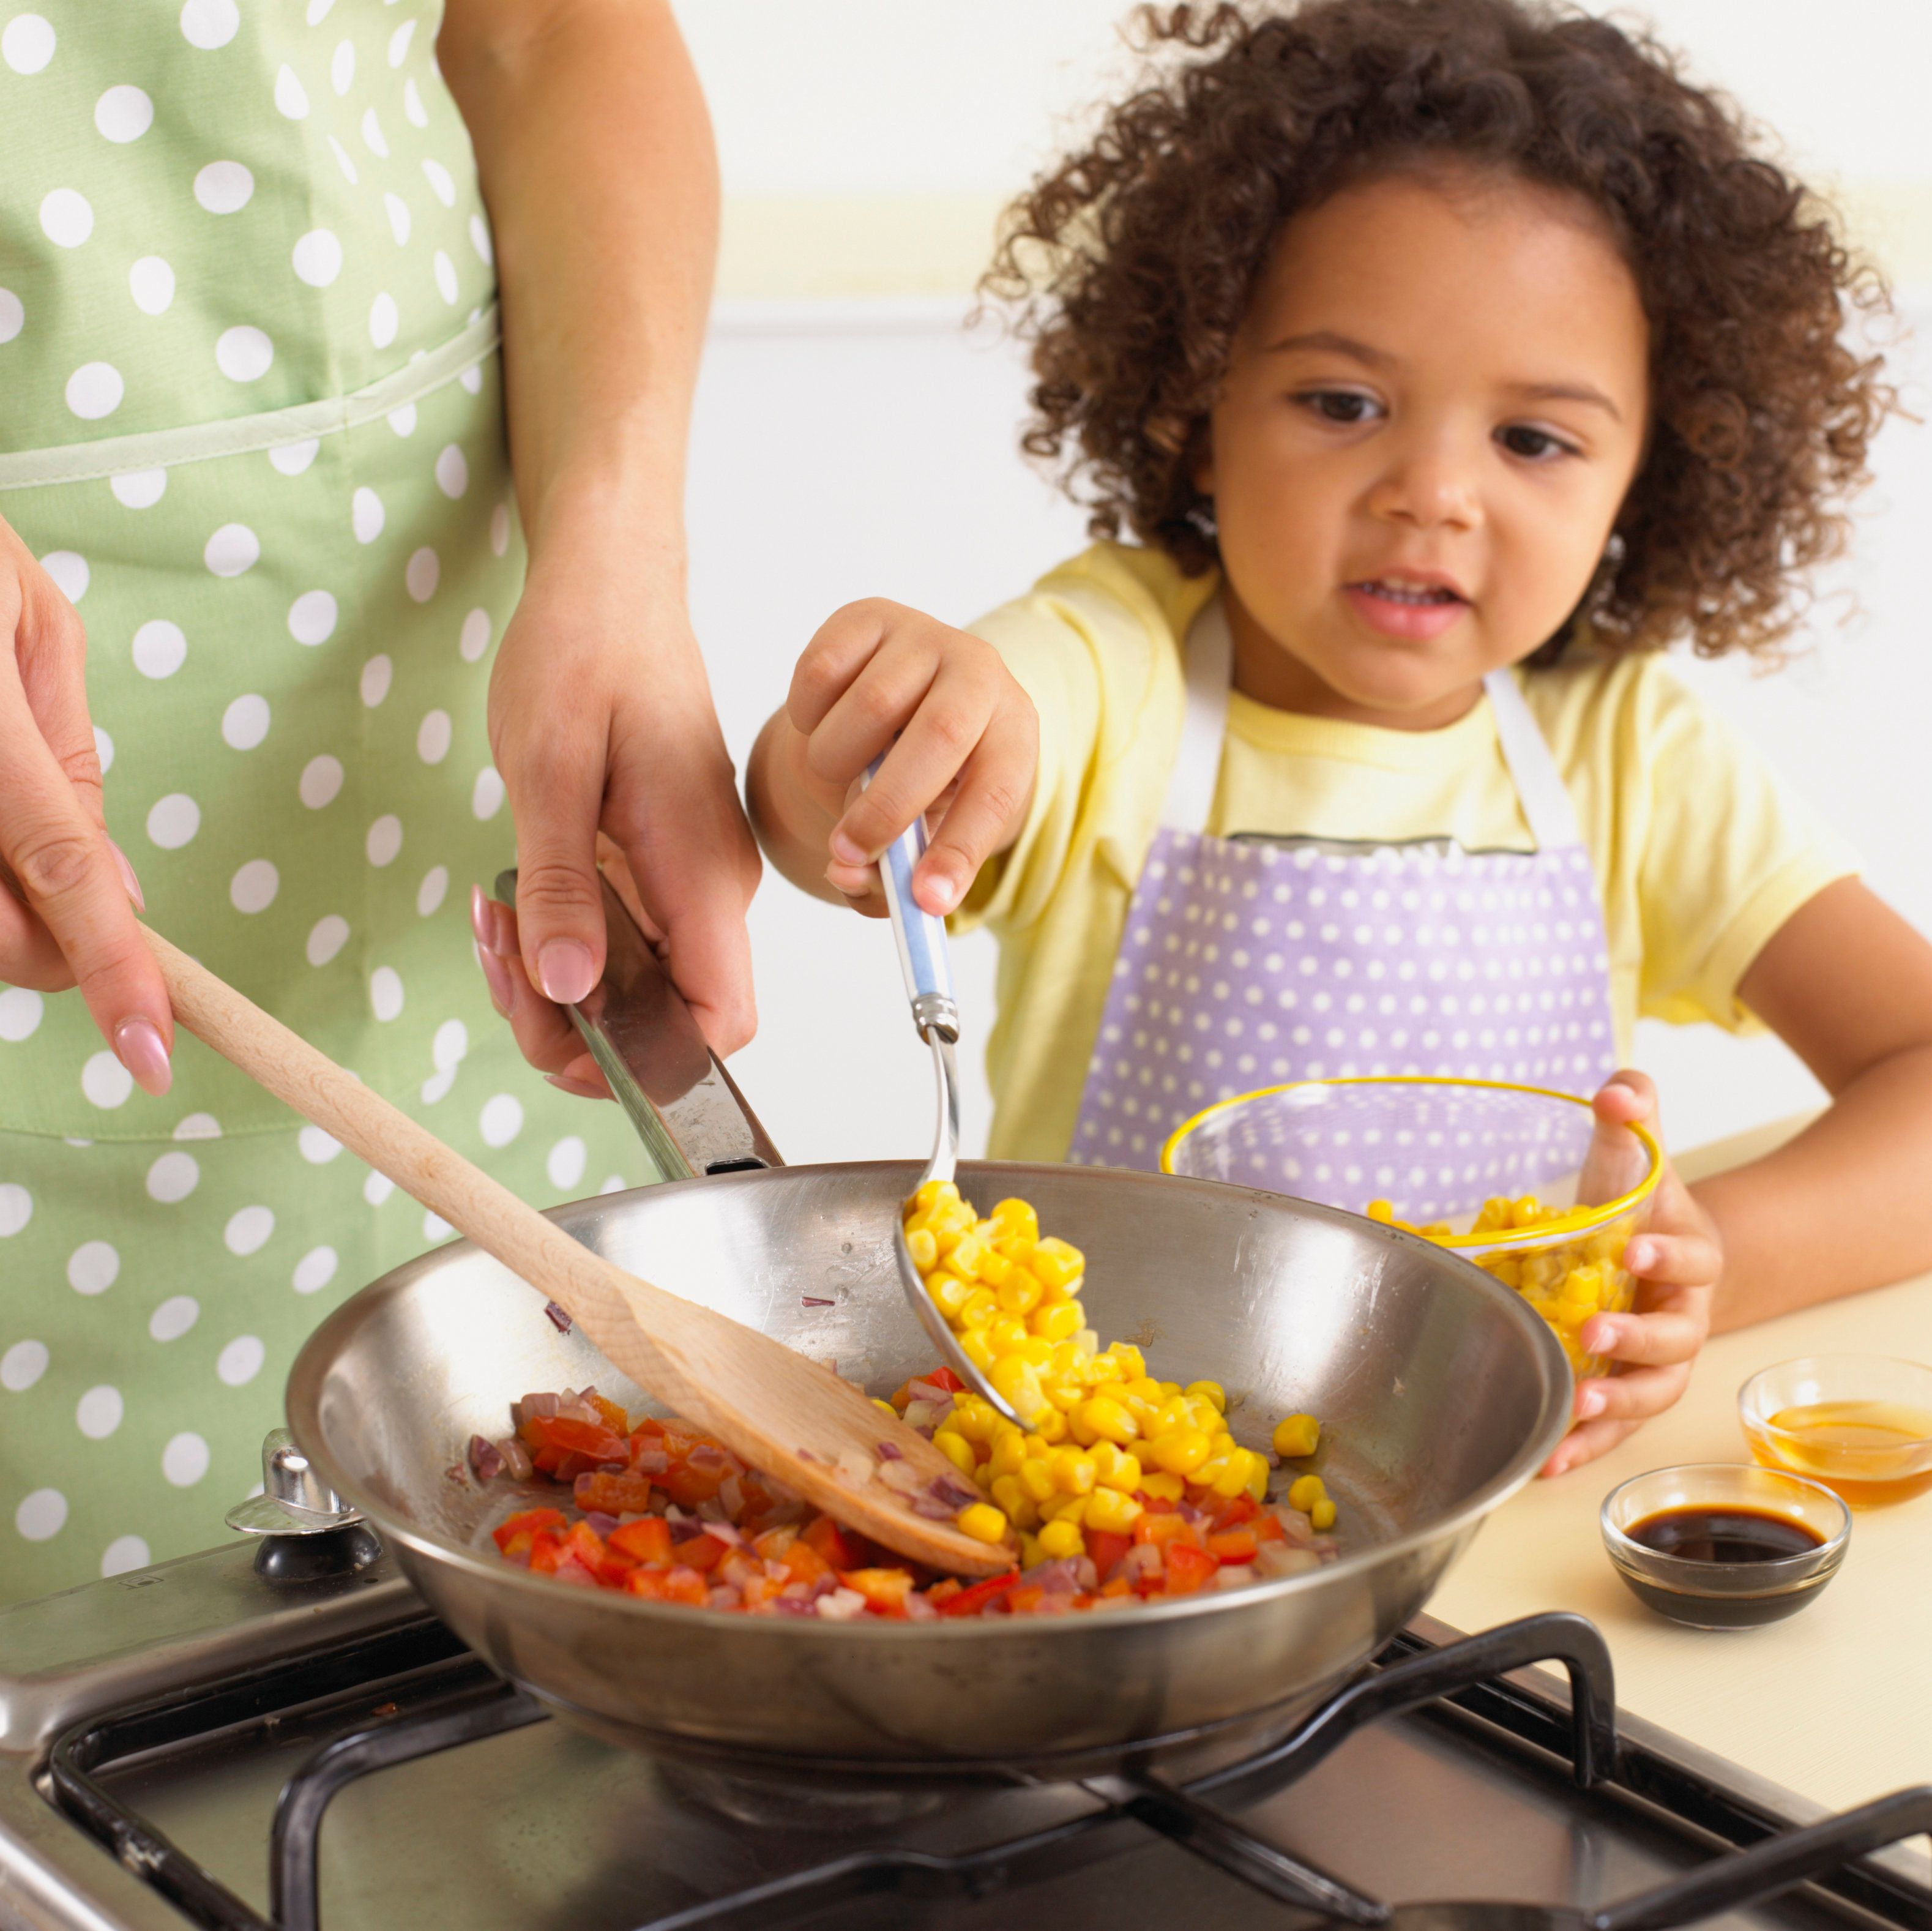 Girl adding sweetcorn with spoon, alongside woman stirring onions and red bell peppers in frying pan, bowls of sweetcorn, vinegar and honey on kitchen worktop, close-up